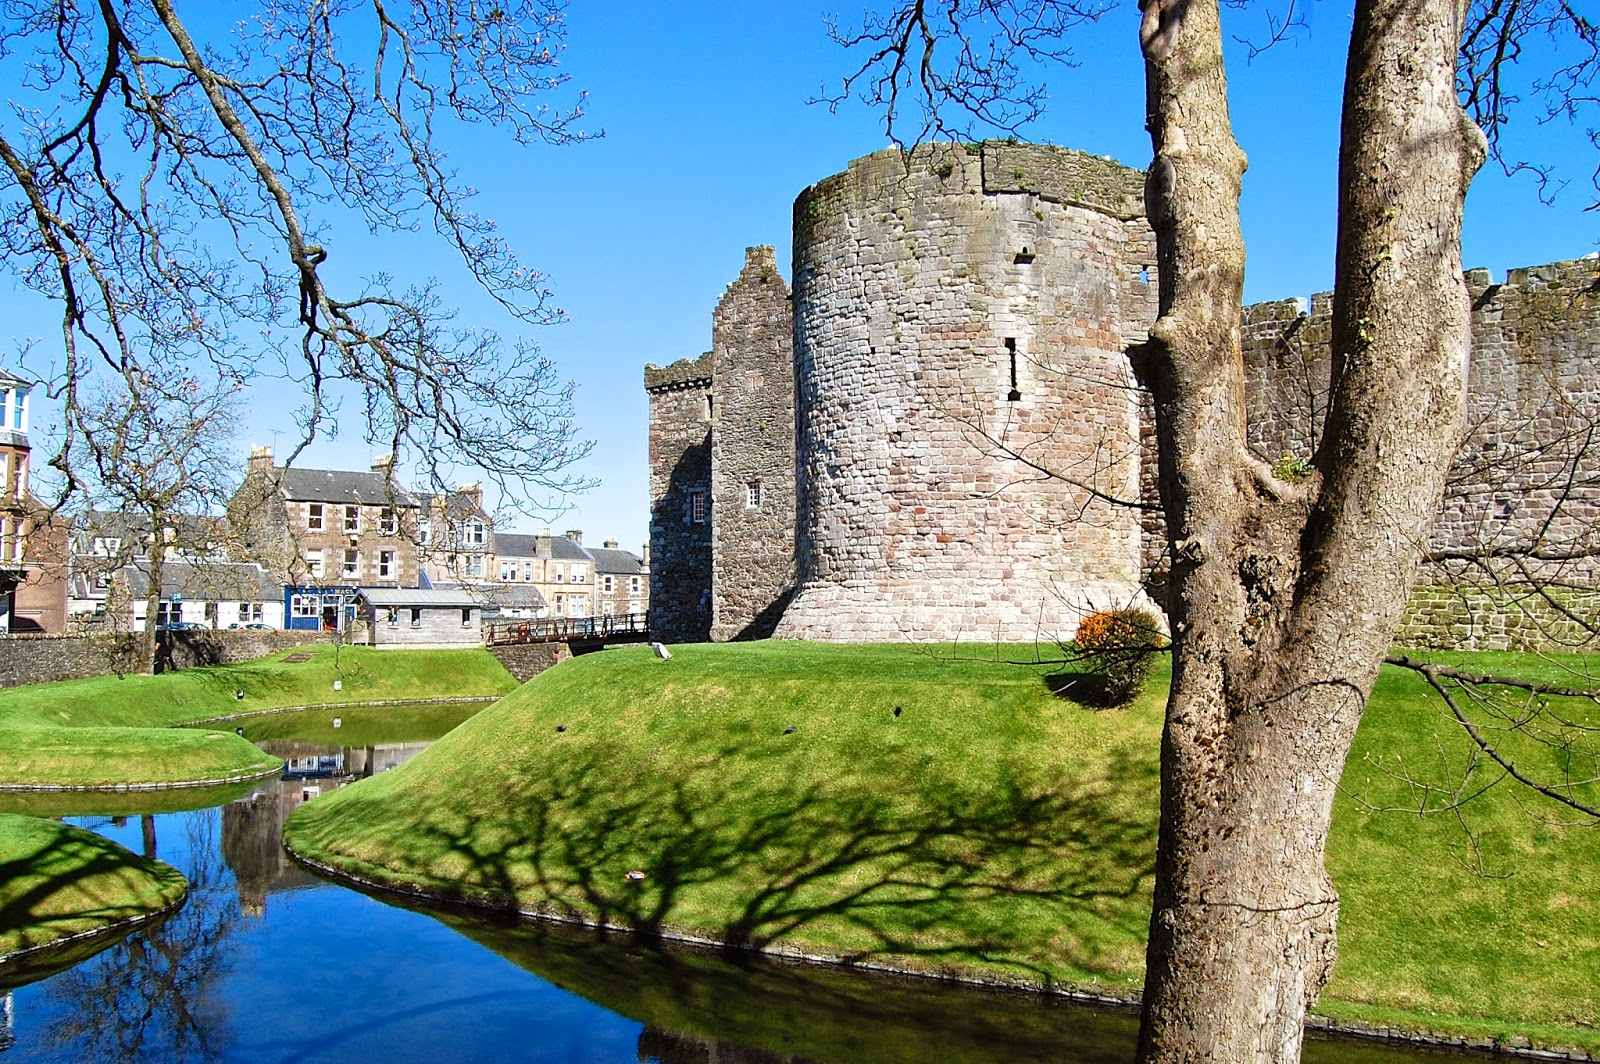 Northwest tower of Rothesay Castle